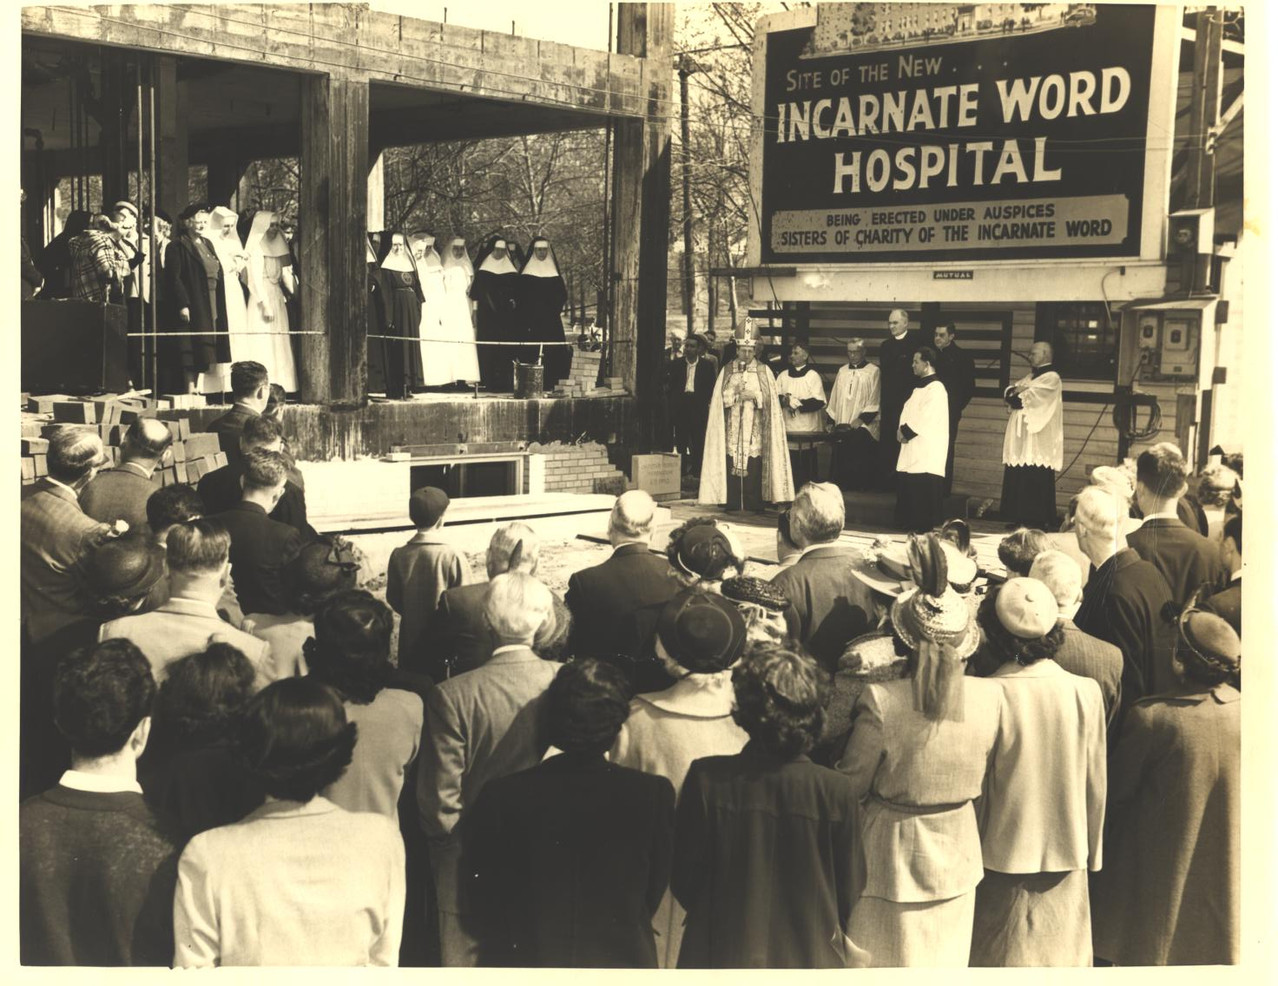 Incarnate Word Hospital in St. Louis began as the Josephine Heitkamp Hospital in 1900. It continued as a privately operated hospital until 1933 when the Sisters took charge of the hospital. The hospital and the Sisters served the South City of St. Louis until the hospital was sold in 1997.